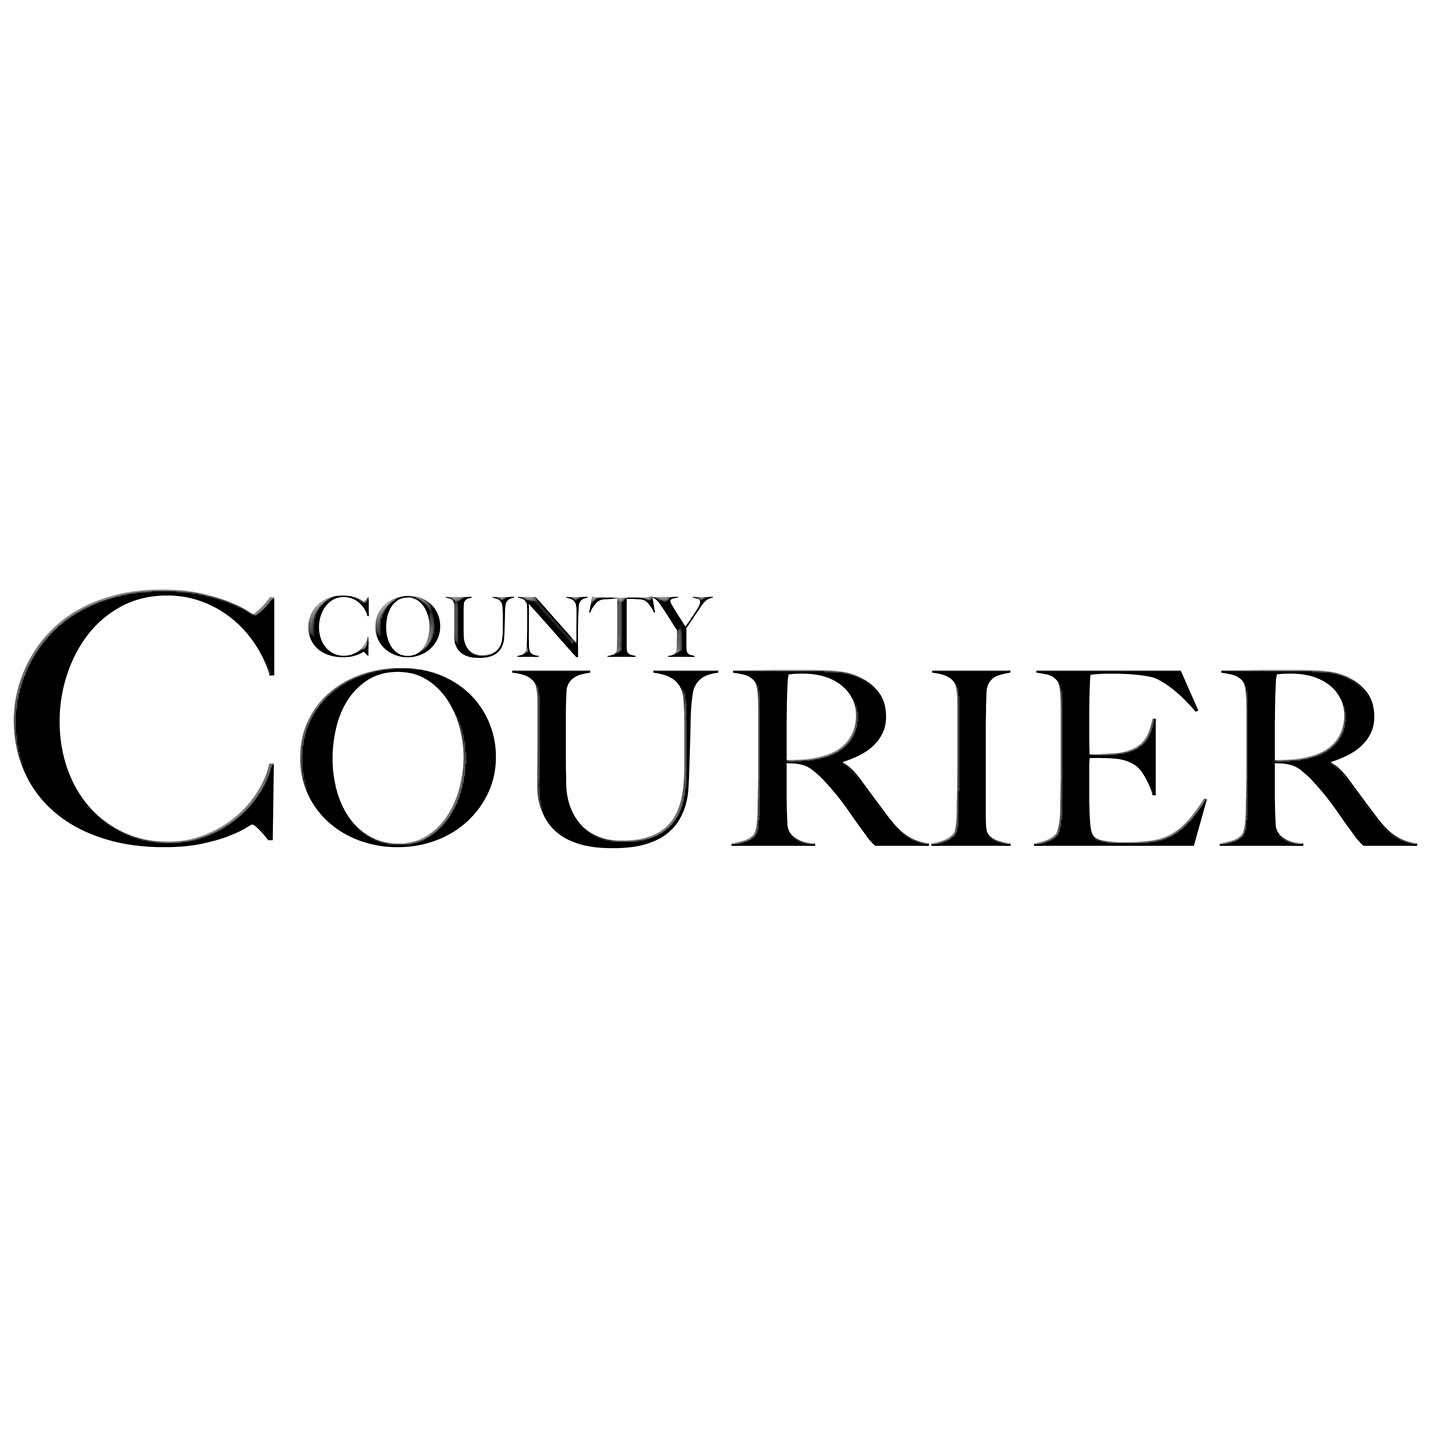 County Courier